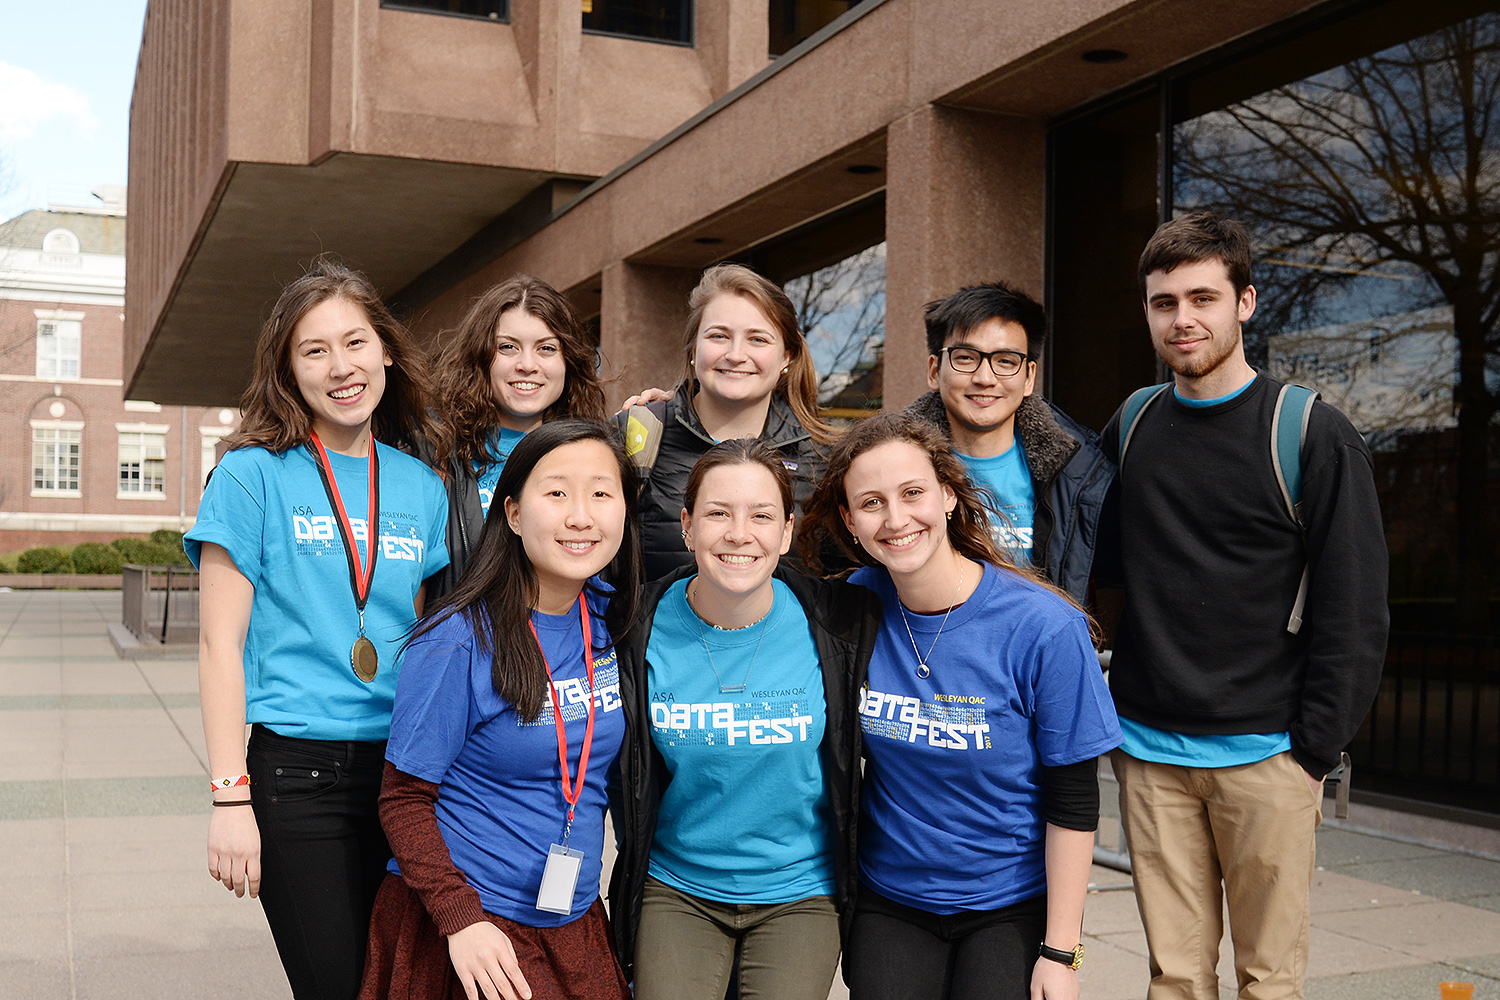 Students gathered outside Exley following DataFest. (Photos by Will Barr '18)